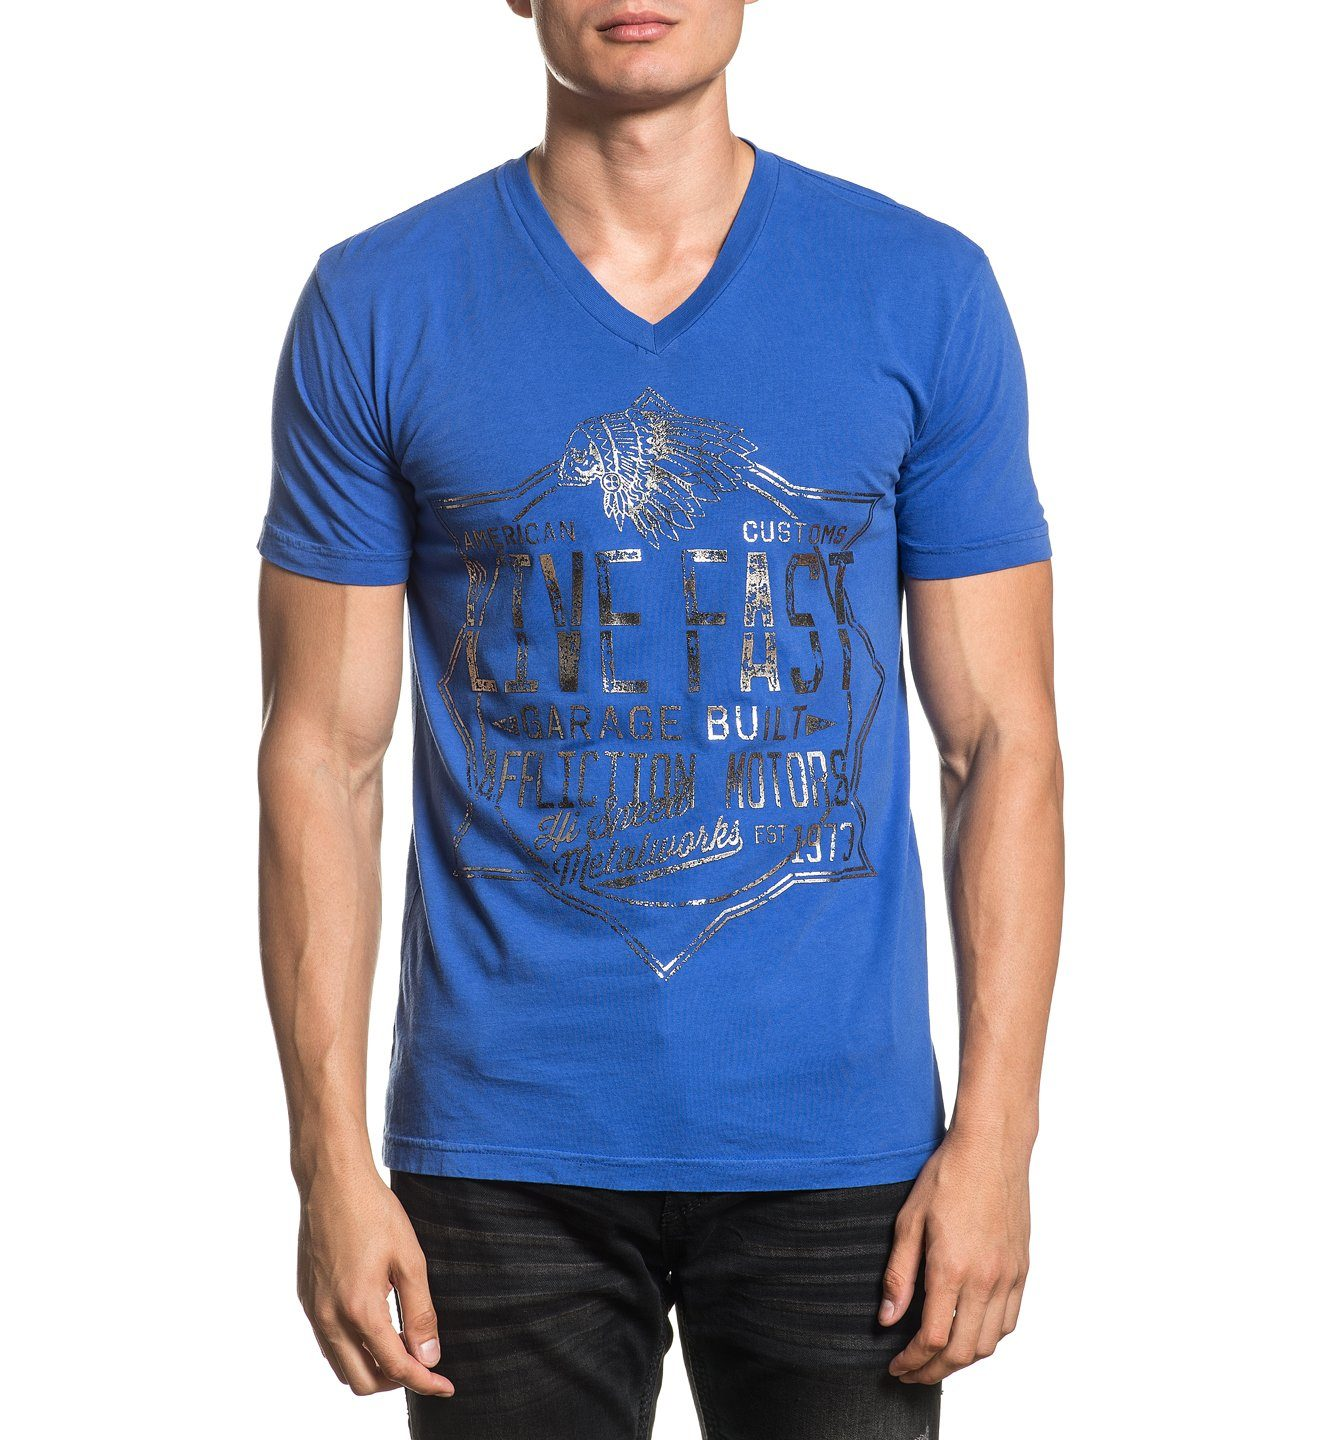 Mens Short Sleeve Tees - Speed Metalworks